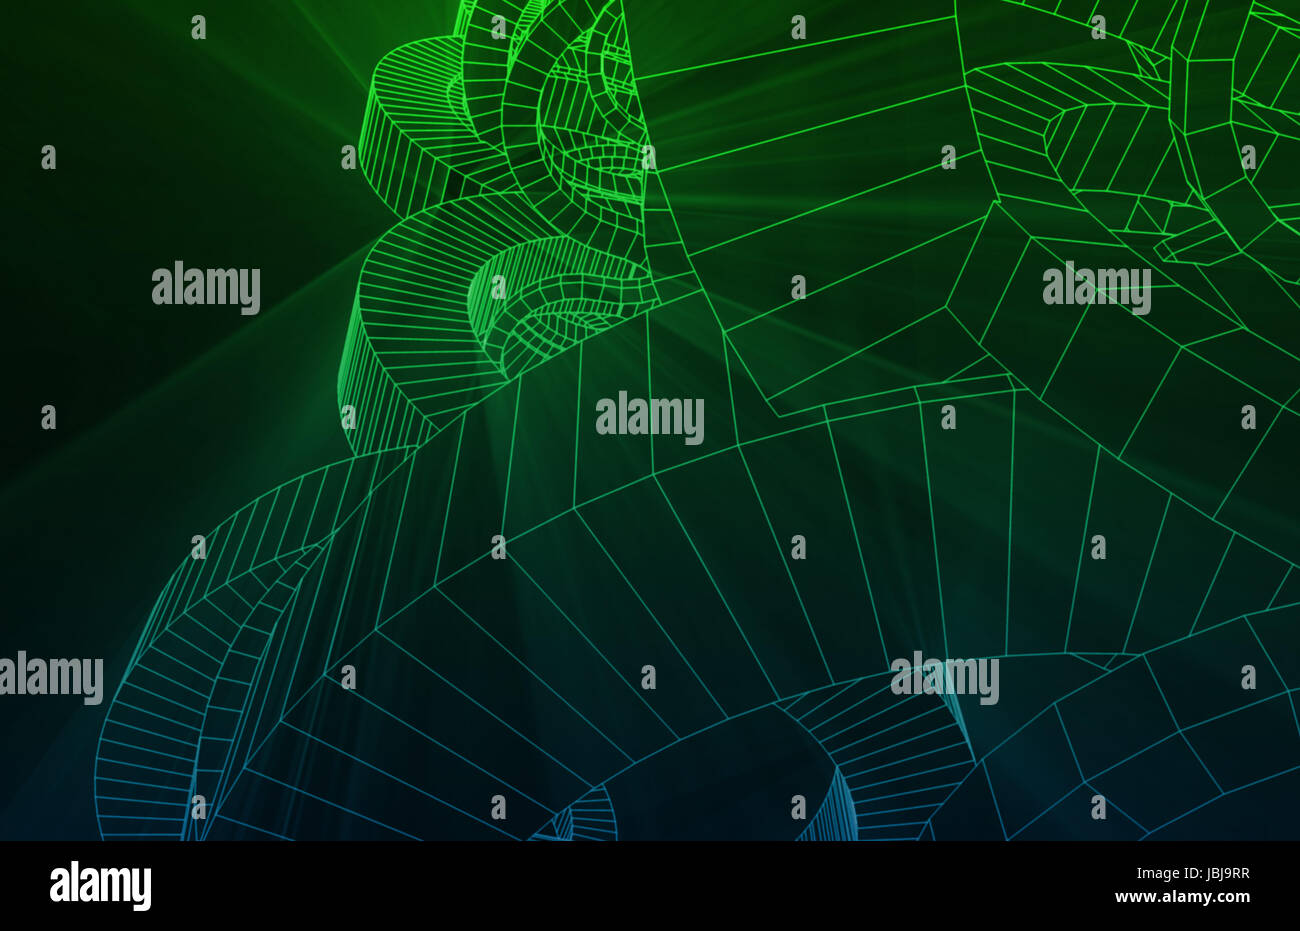 Science Research in the Medicine Biology Field - Stock Image